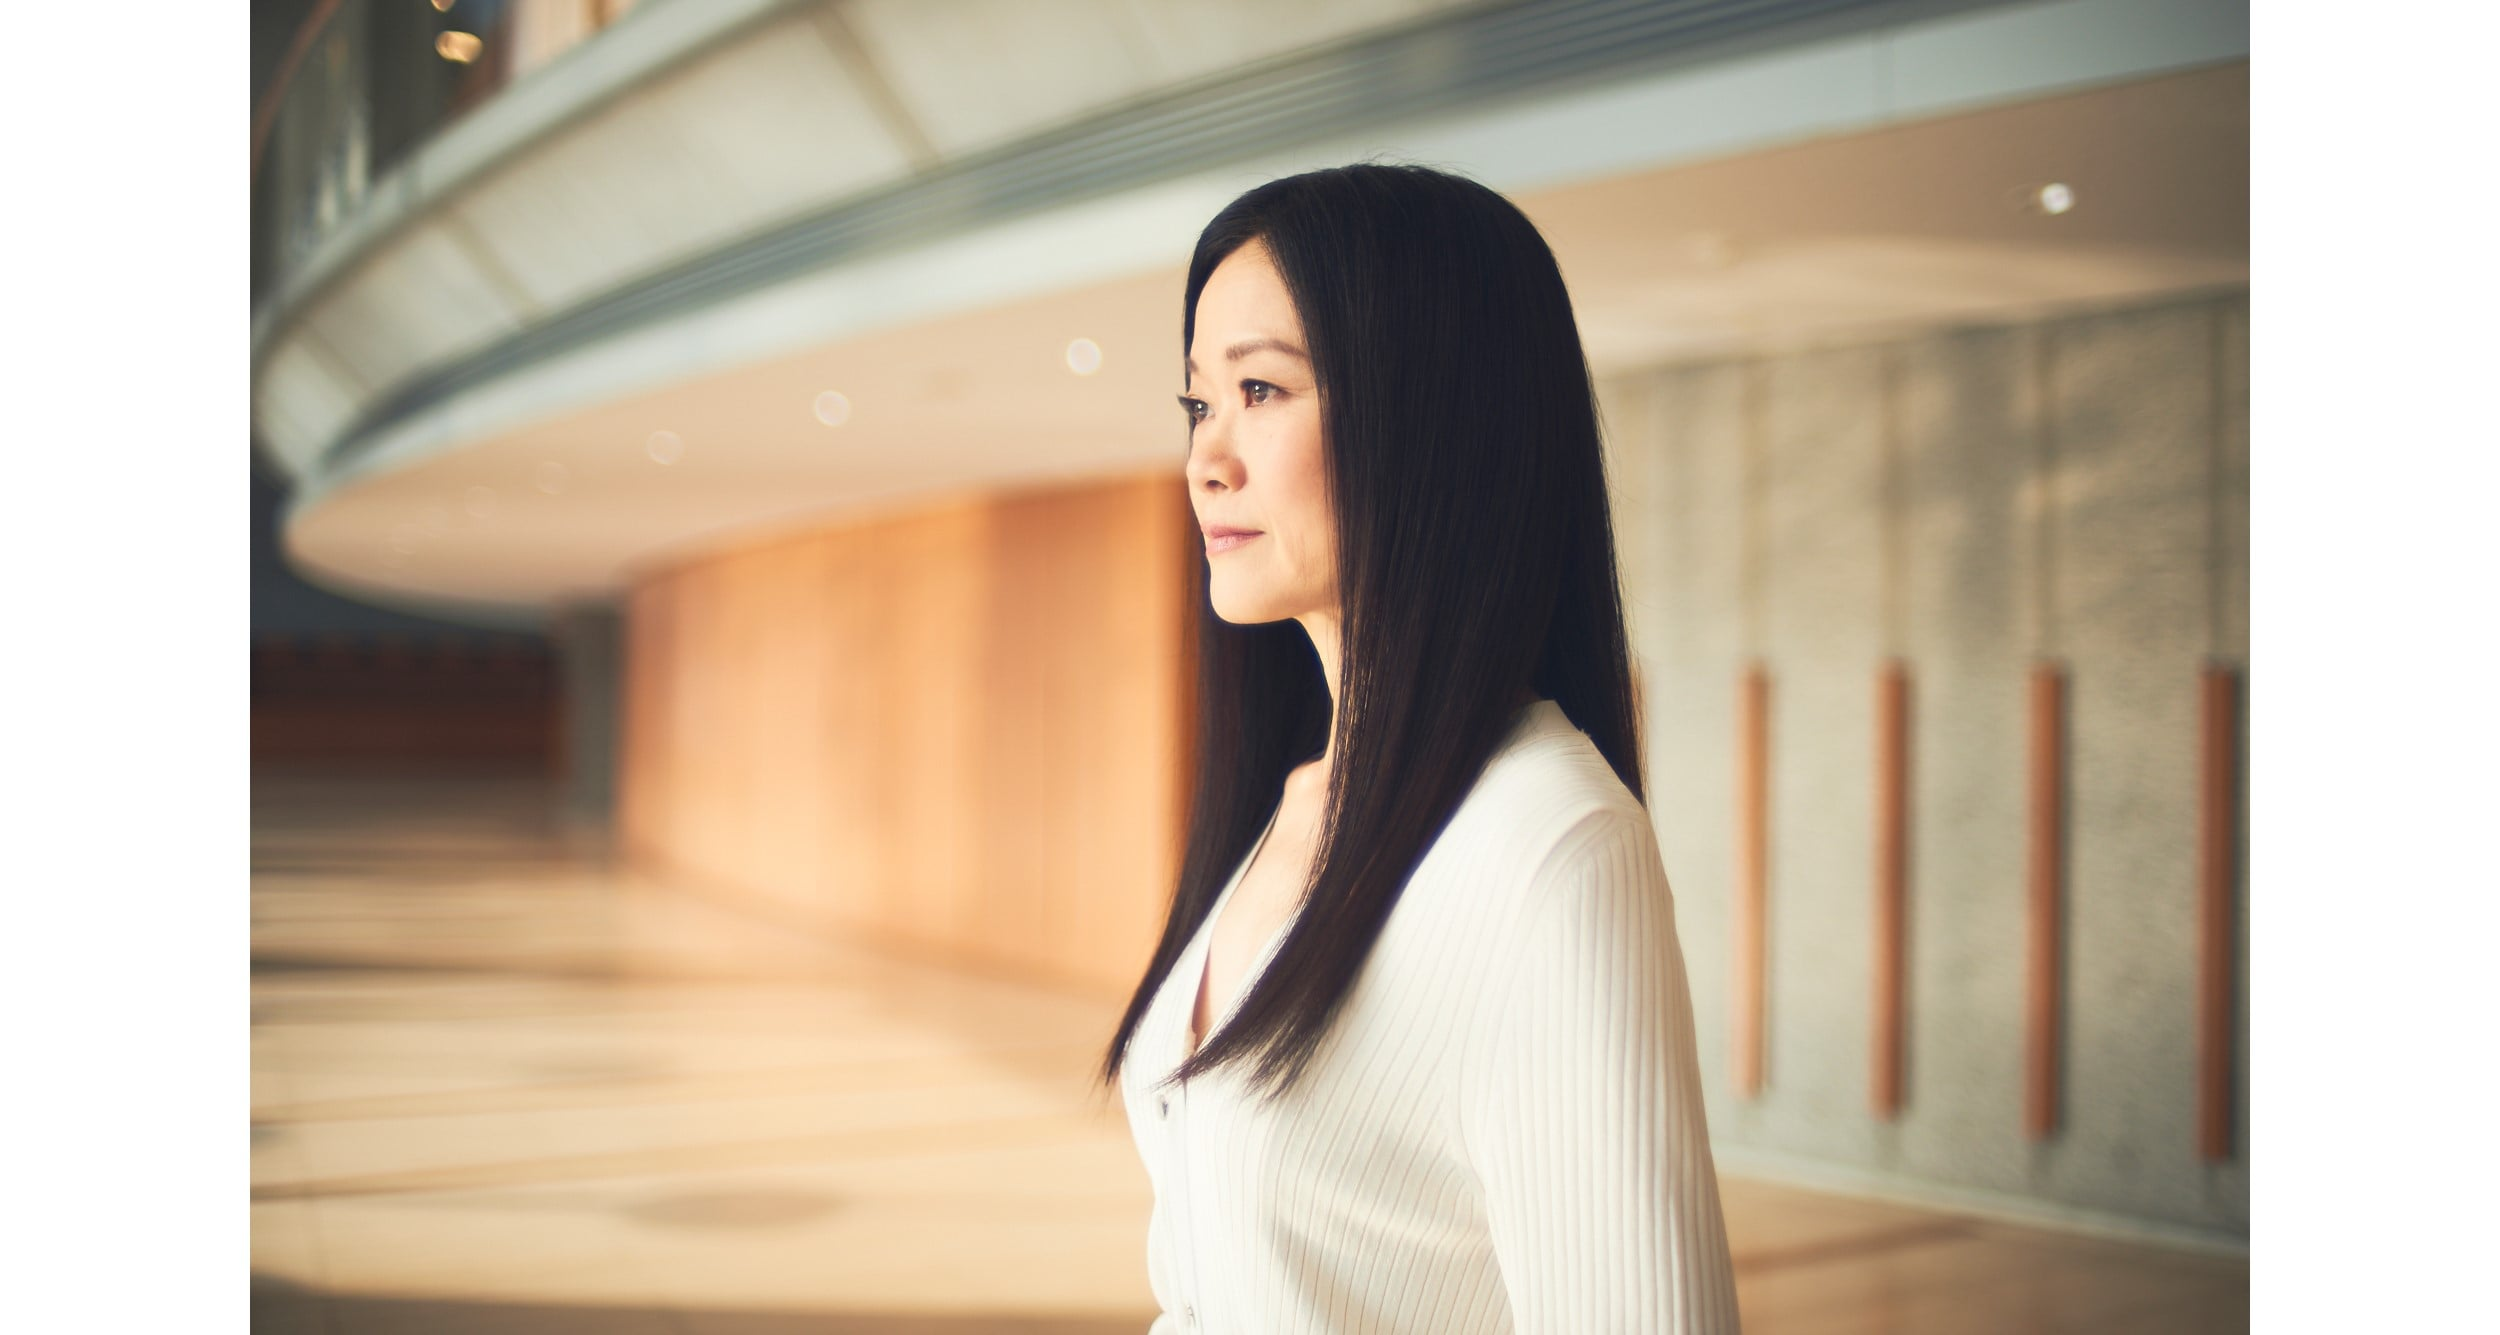 Miyako Yoshida's new curtain is set to rise as the Artistic Director of Ballet & Dance at the New National Theatre Tokyo